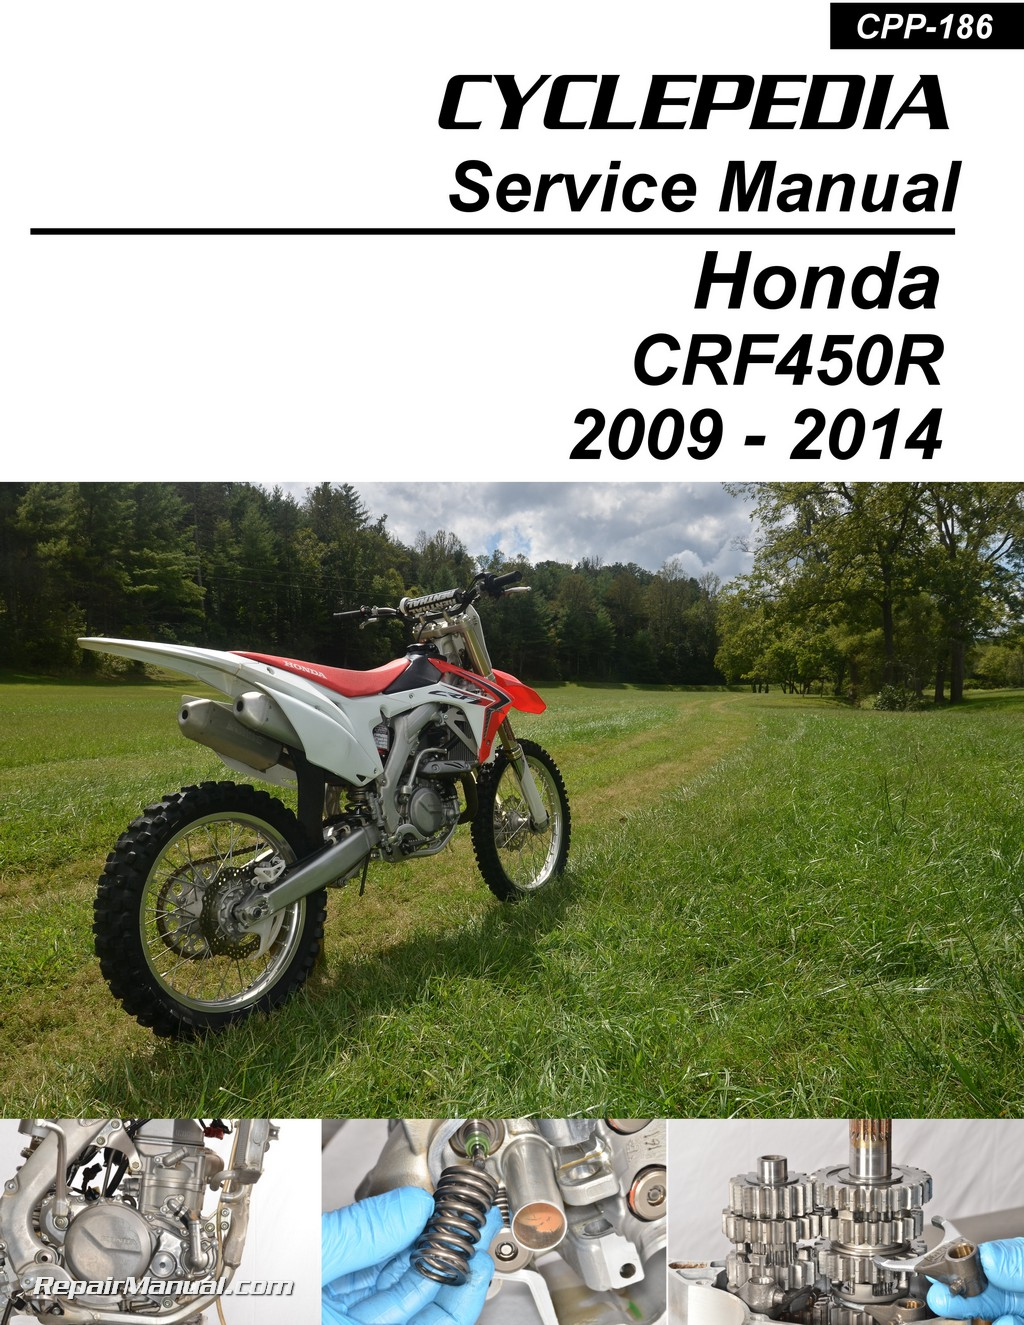 honda crf450r 2009 2014 motorcycle service manual by cyclepedia rh repairmanual com 2017 Honda CRF450R Honda Motocross